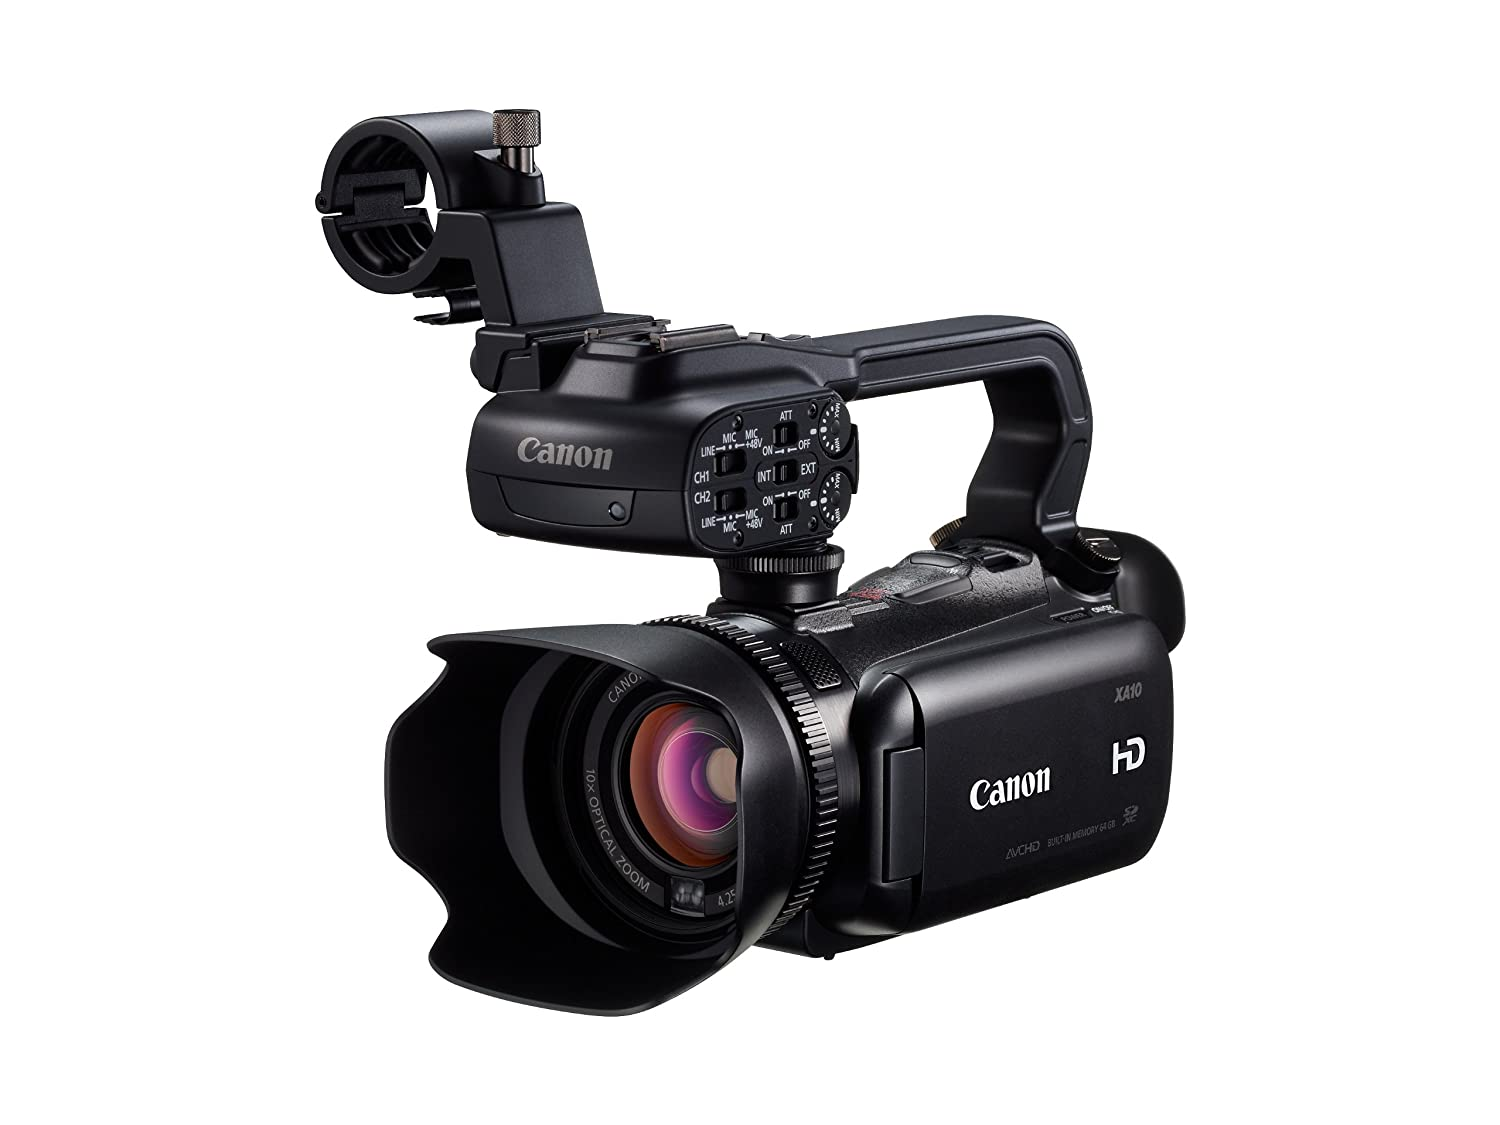 Top 10 Best Professional Camcorders (2020 Reviews & Buying Guide) 2